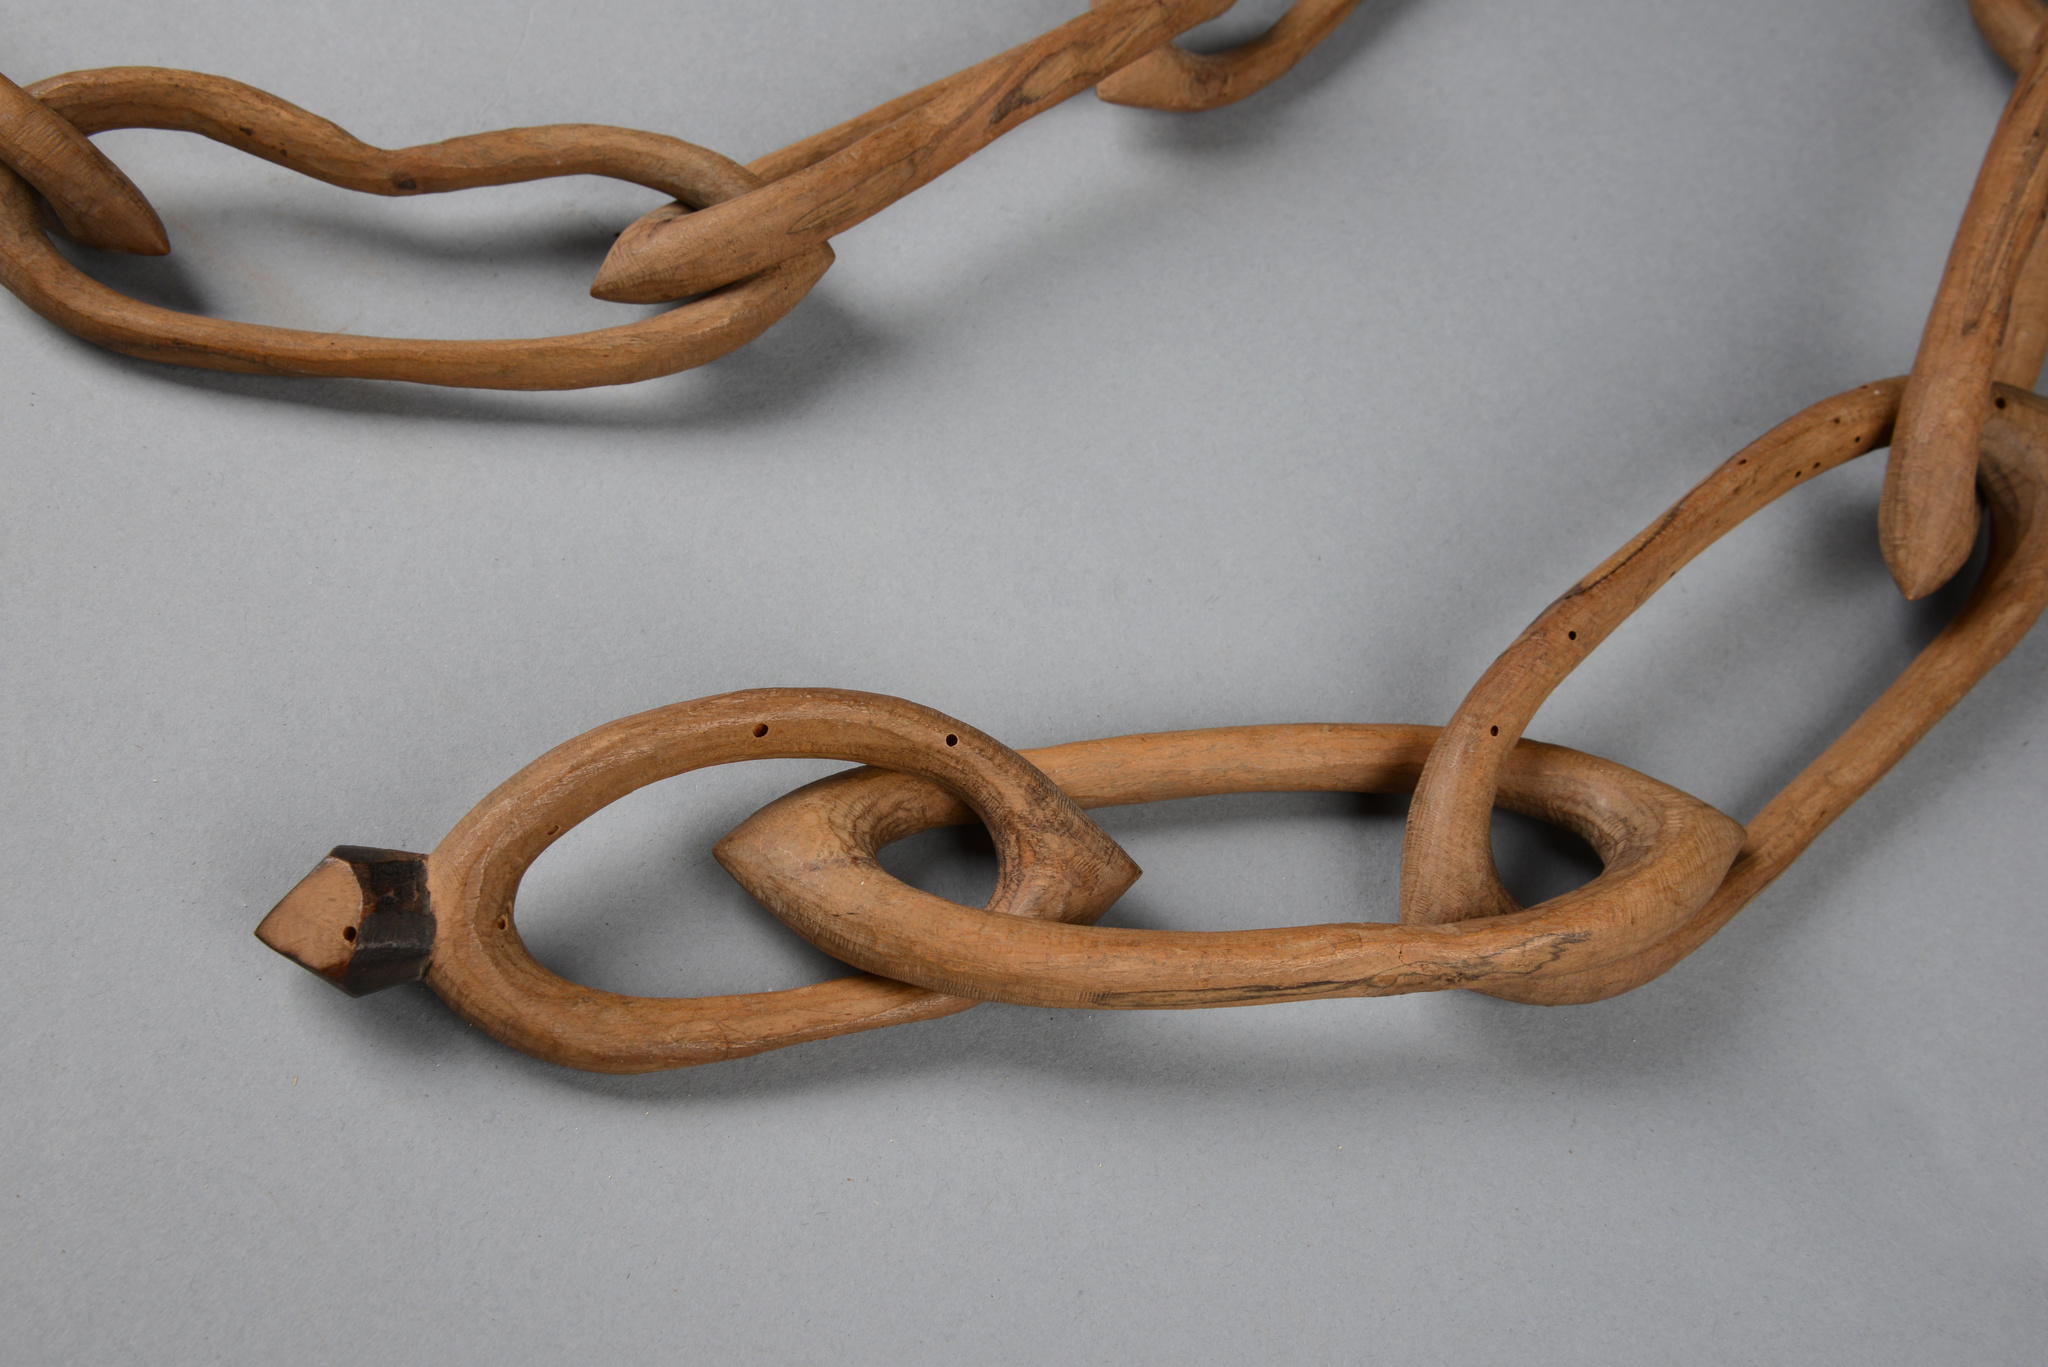 Link chain, before 1920